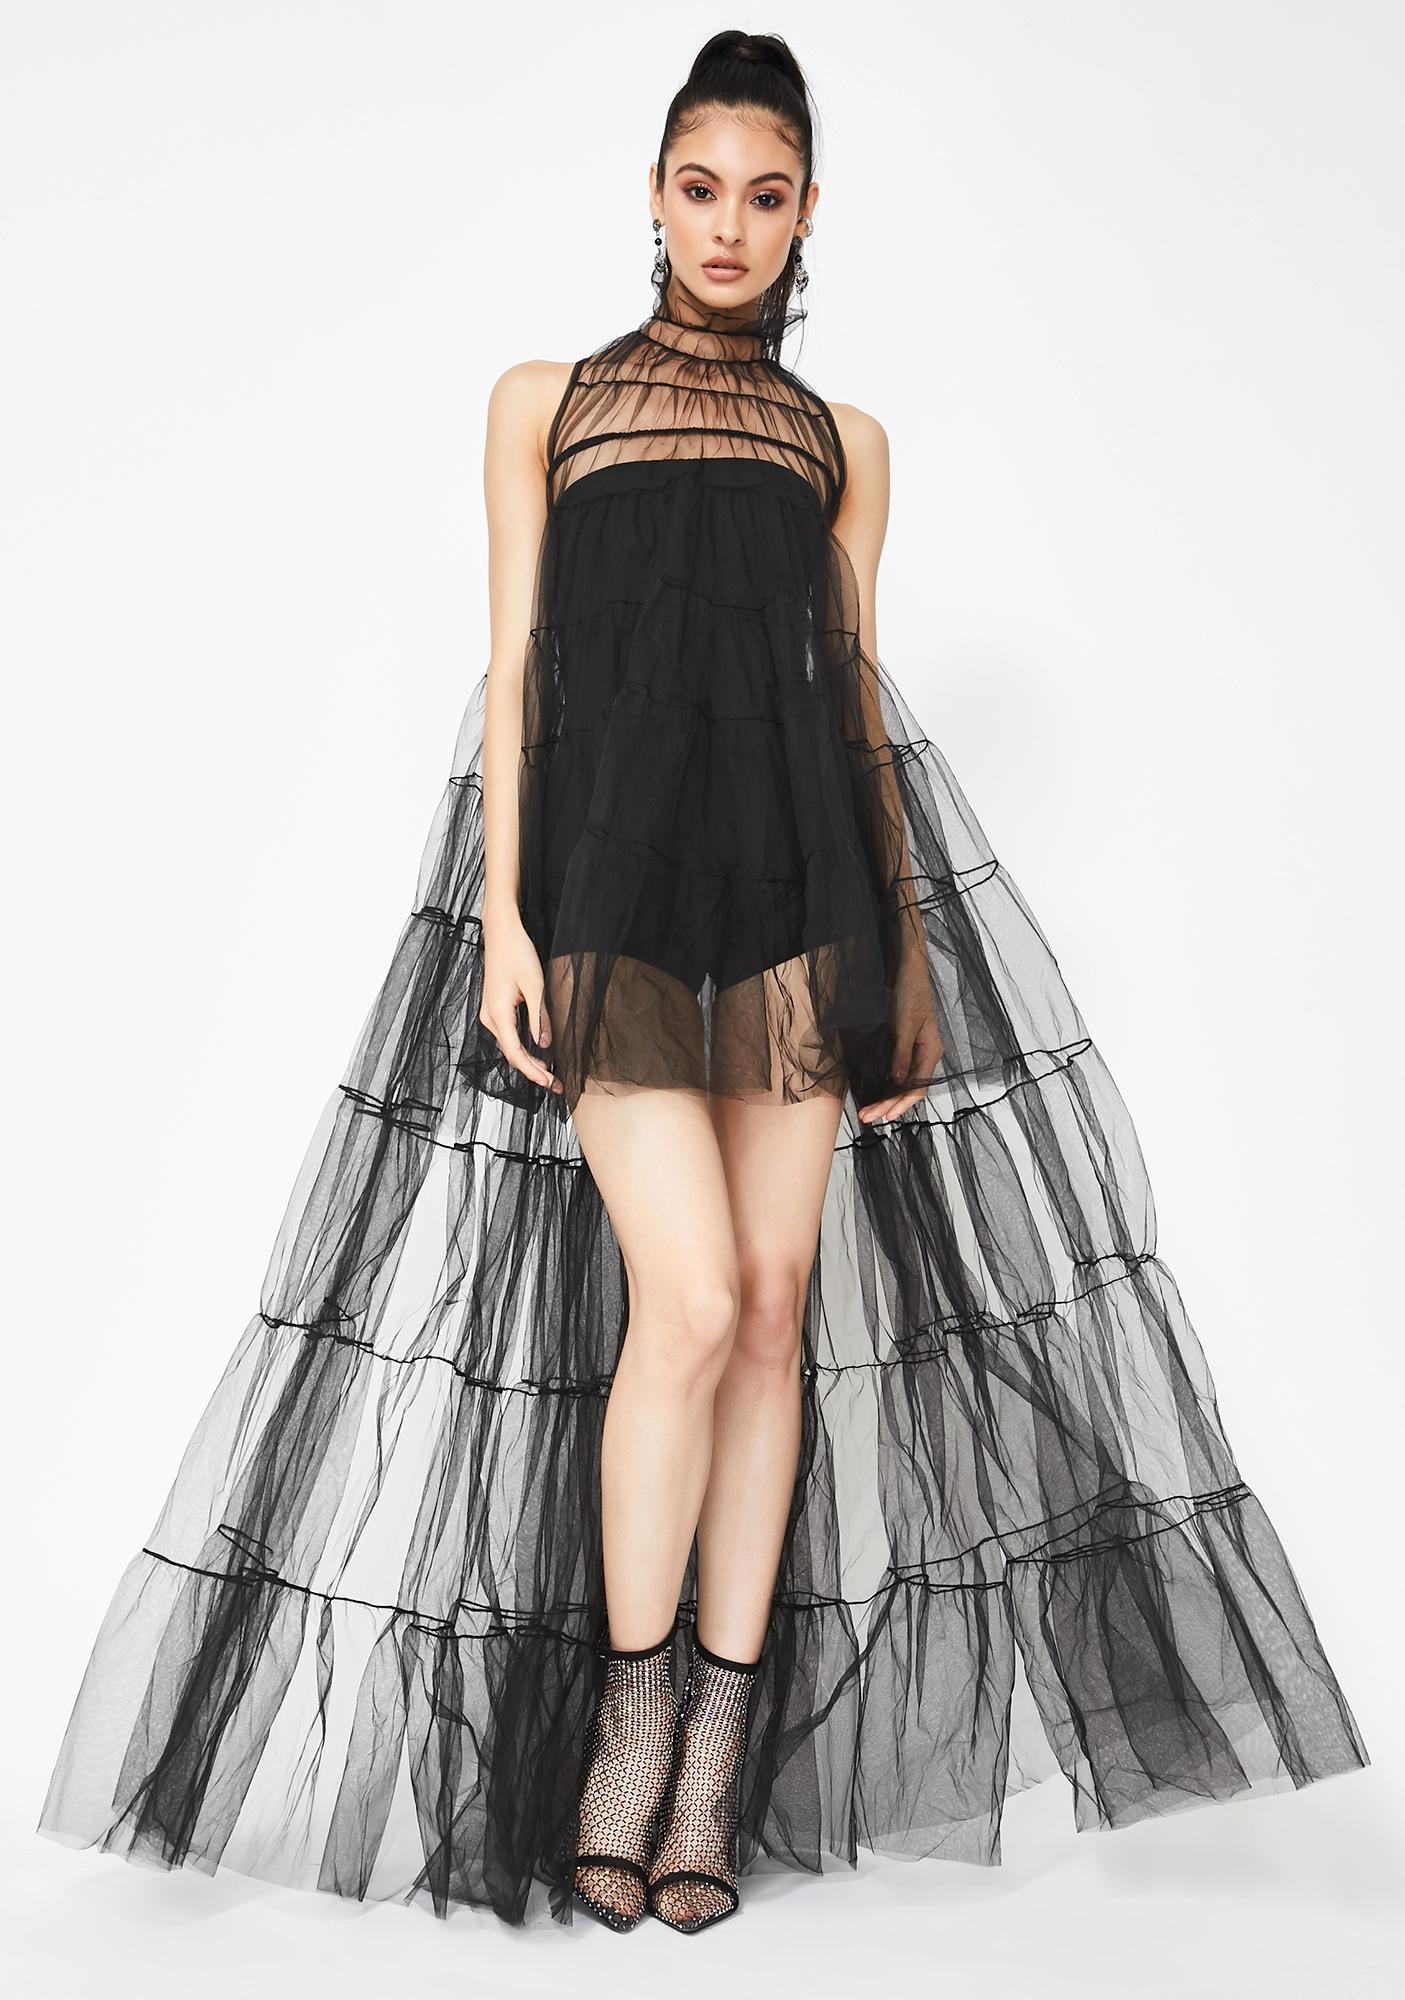 Kiki Riki Bratty Baddie Tulle Dress